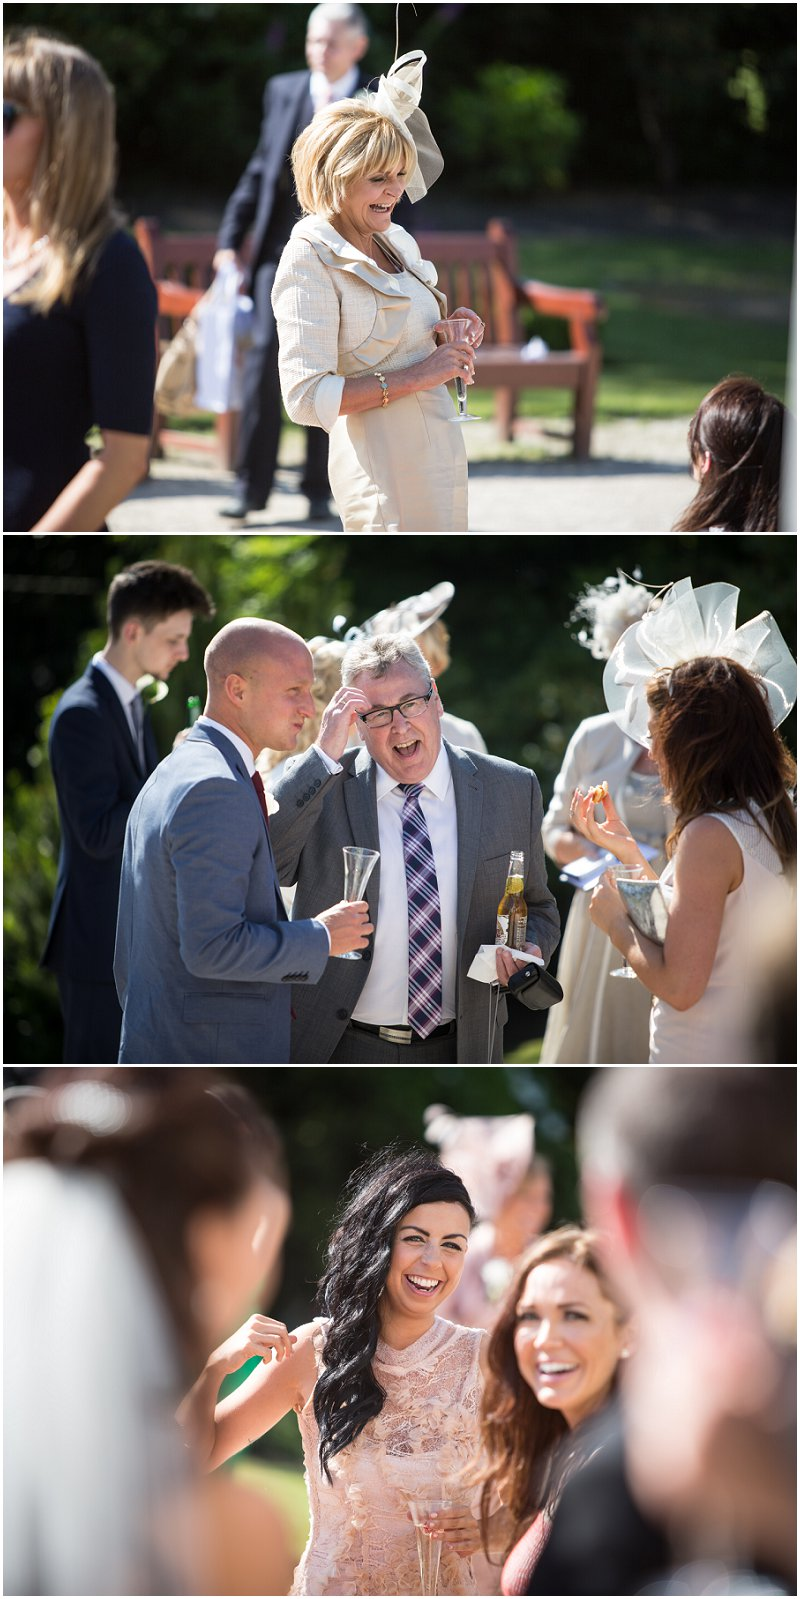 Guests enjoy themselves at Sefton Palm HOuse Wedding